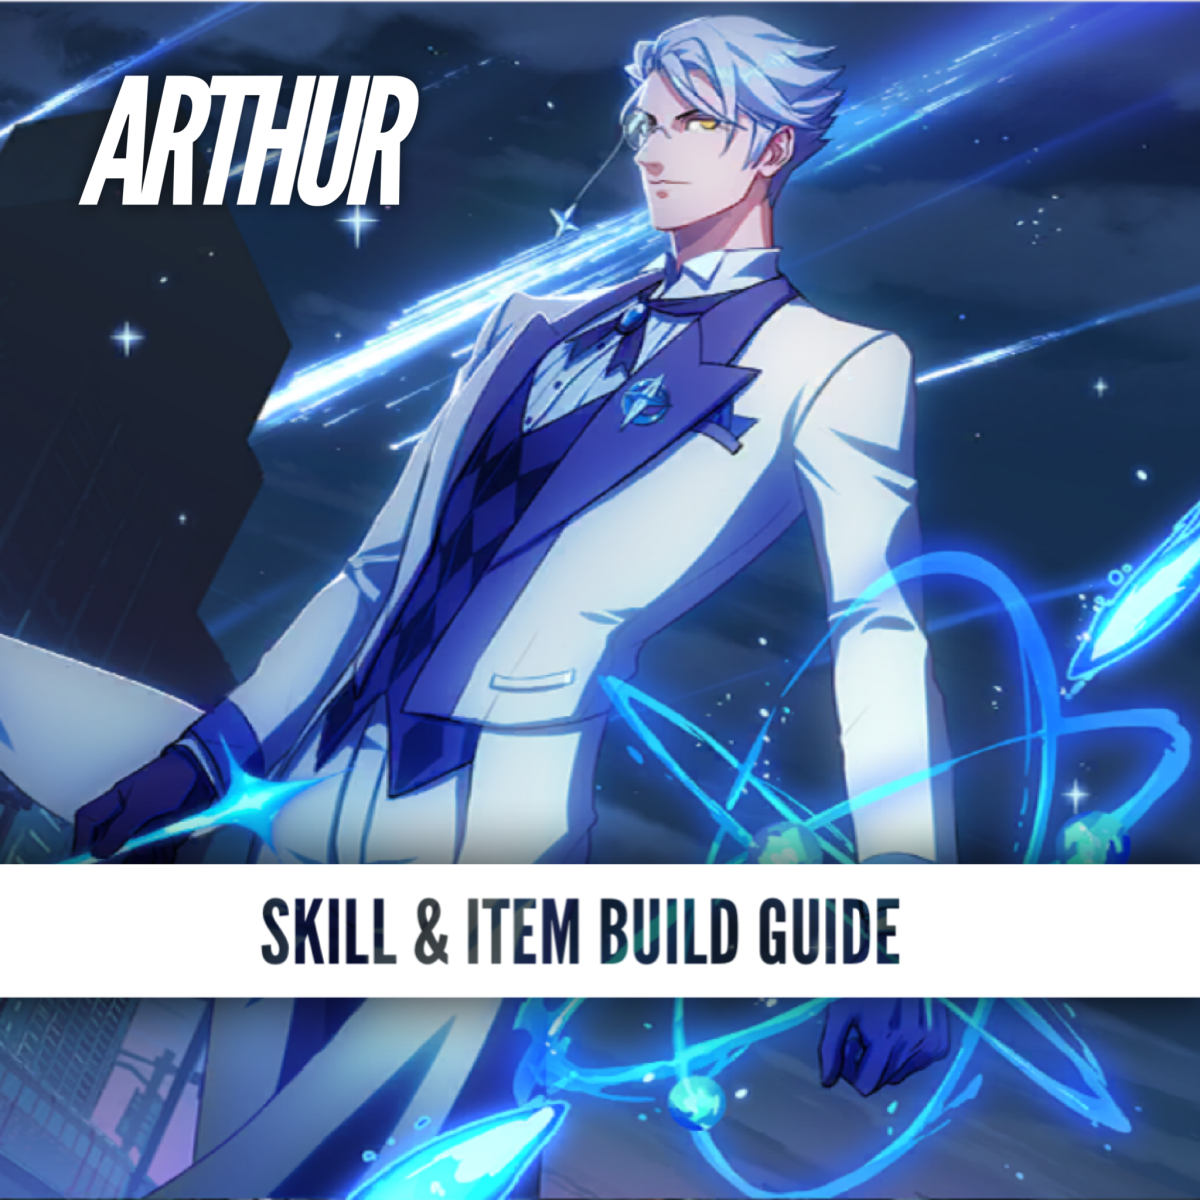 """Extraordinary Ones"": Arthur Skill and Item Build Guide"